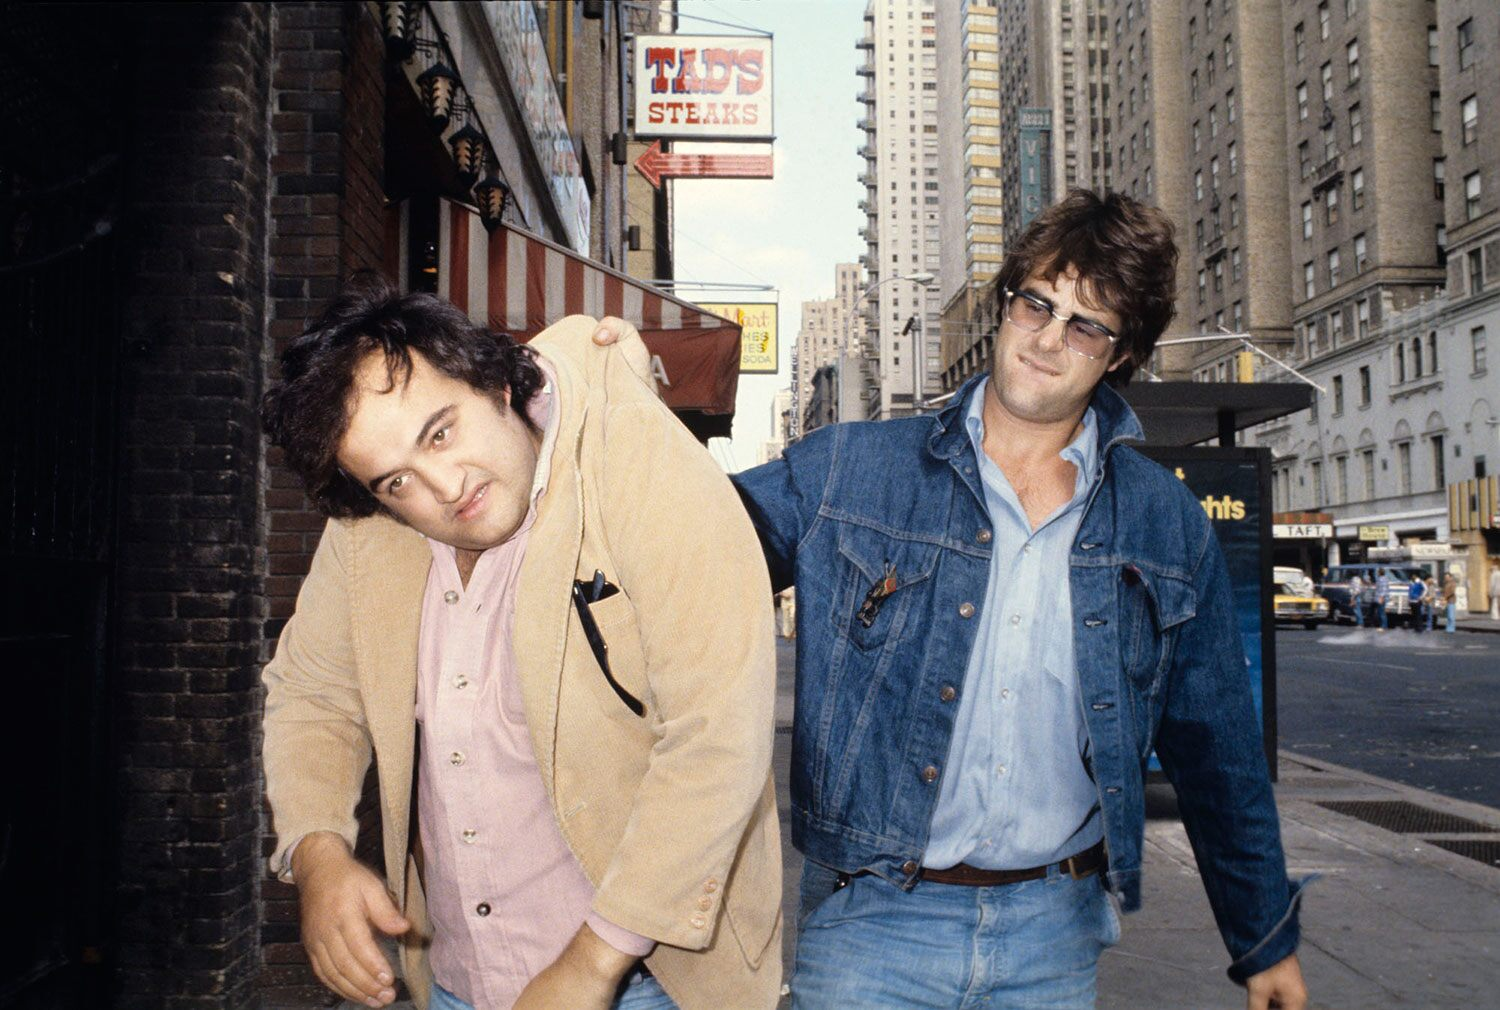 The Blues Brothers act originated in 1978 as recurring musical appearances by John Belushi and Dan Aykroyd on their breakthrough TV show, Saturday Night Live.